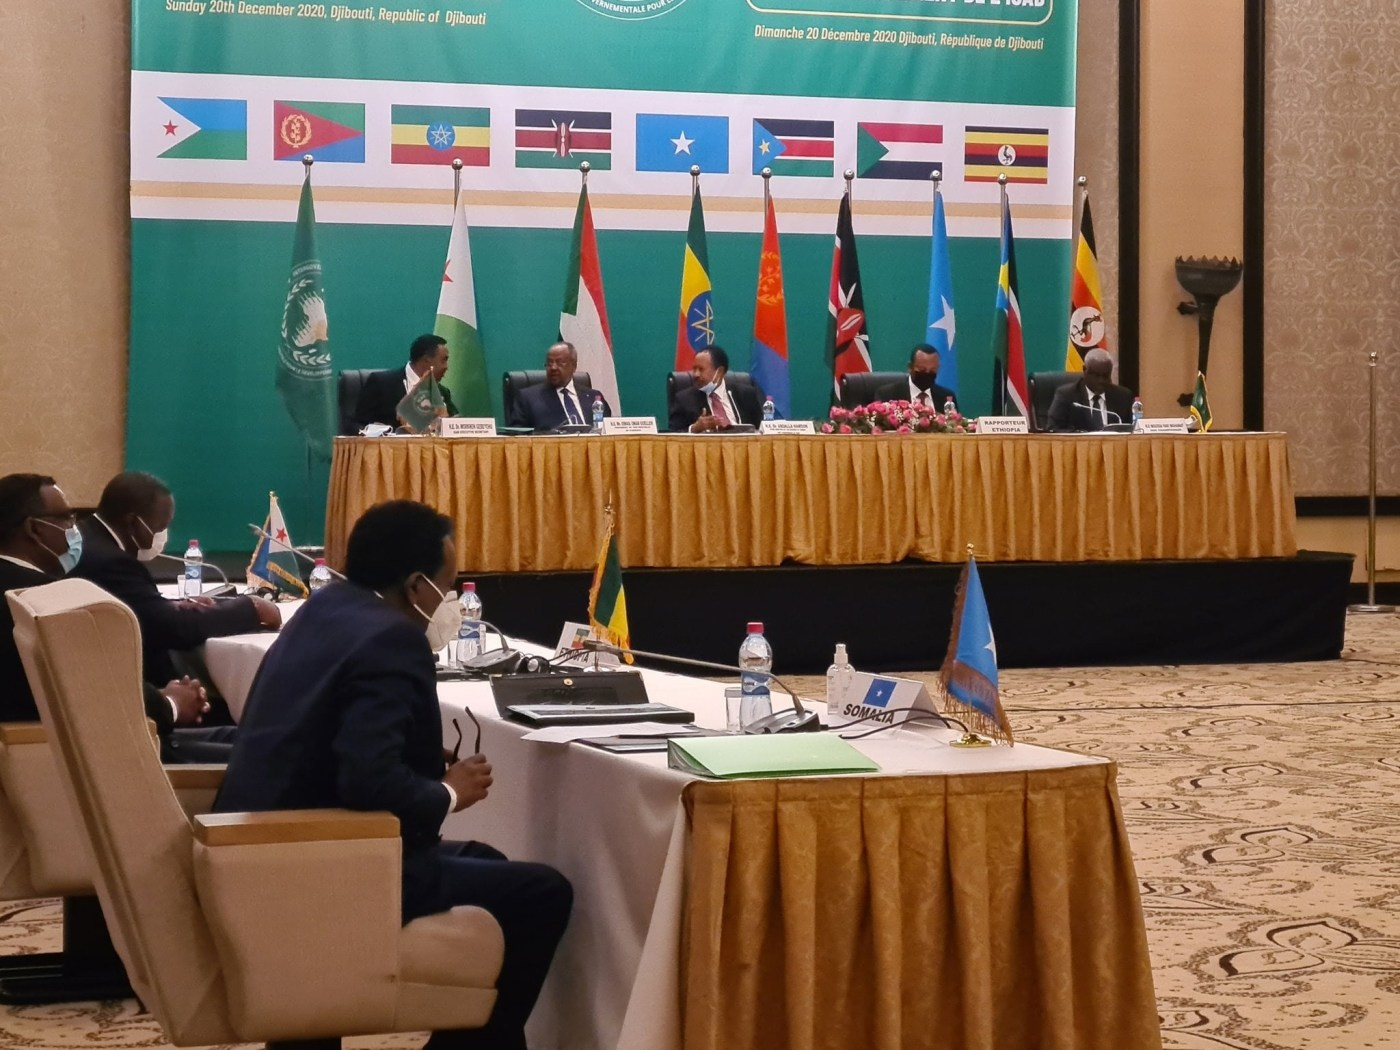 IGAD heads of state and government meeting during the extra-ordinary summit in Djibouti, December 20, 2020(Photo credit: courtesy image)